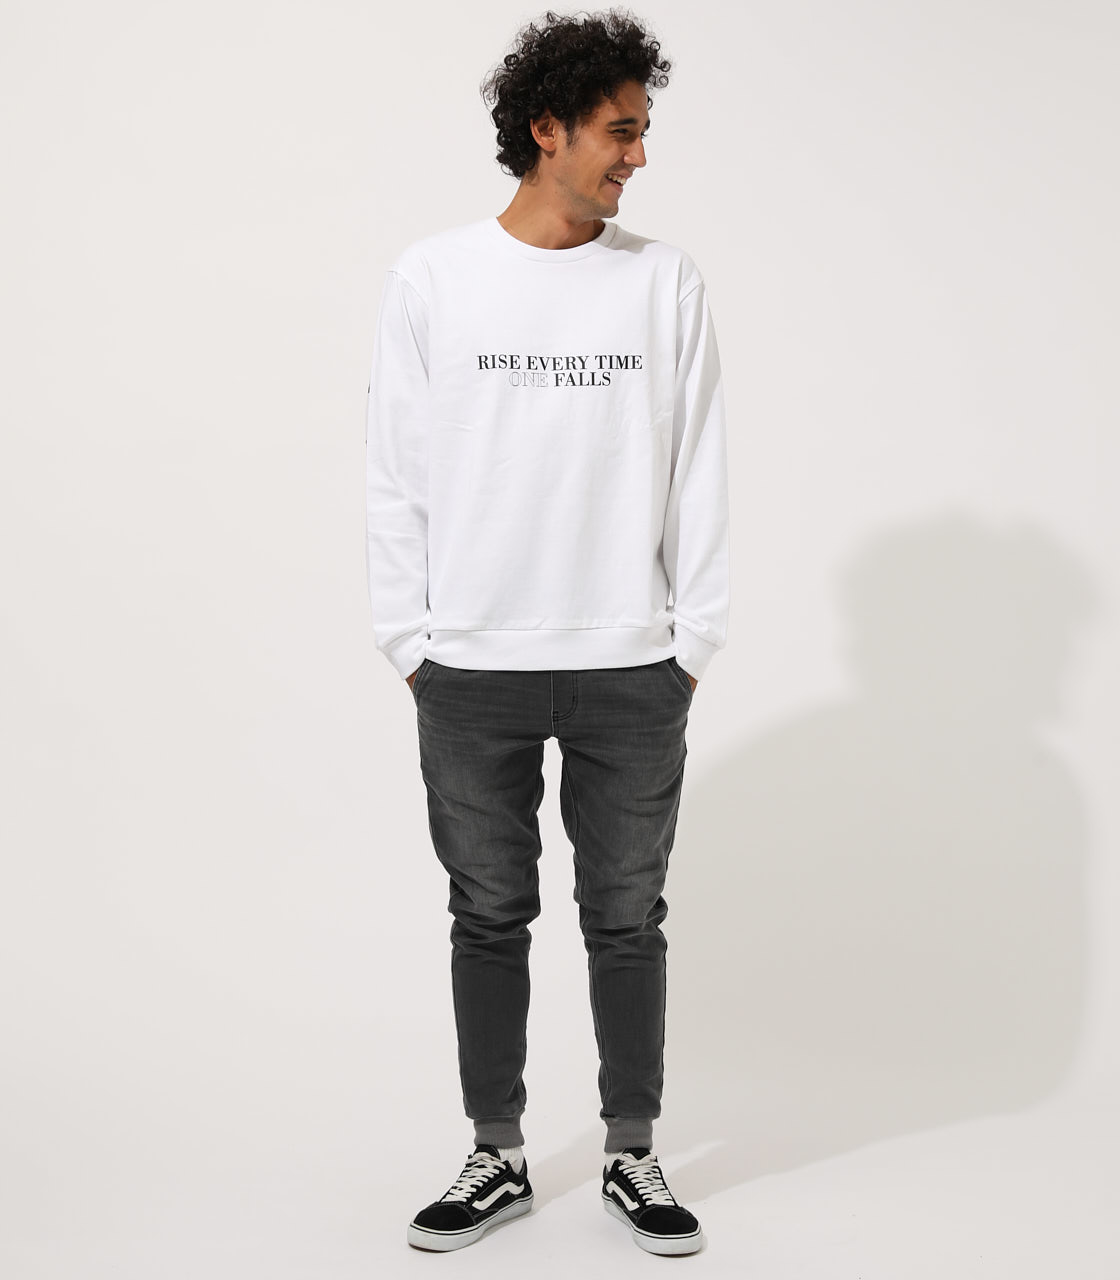 OUTFACE PRINT PULLOVER/アウトフェイスプリントプルオーバー 詳細画像 WHT 3